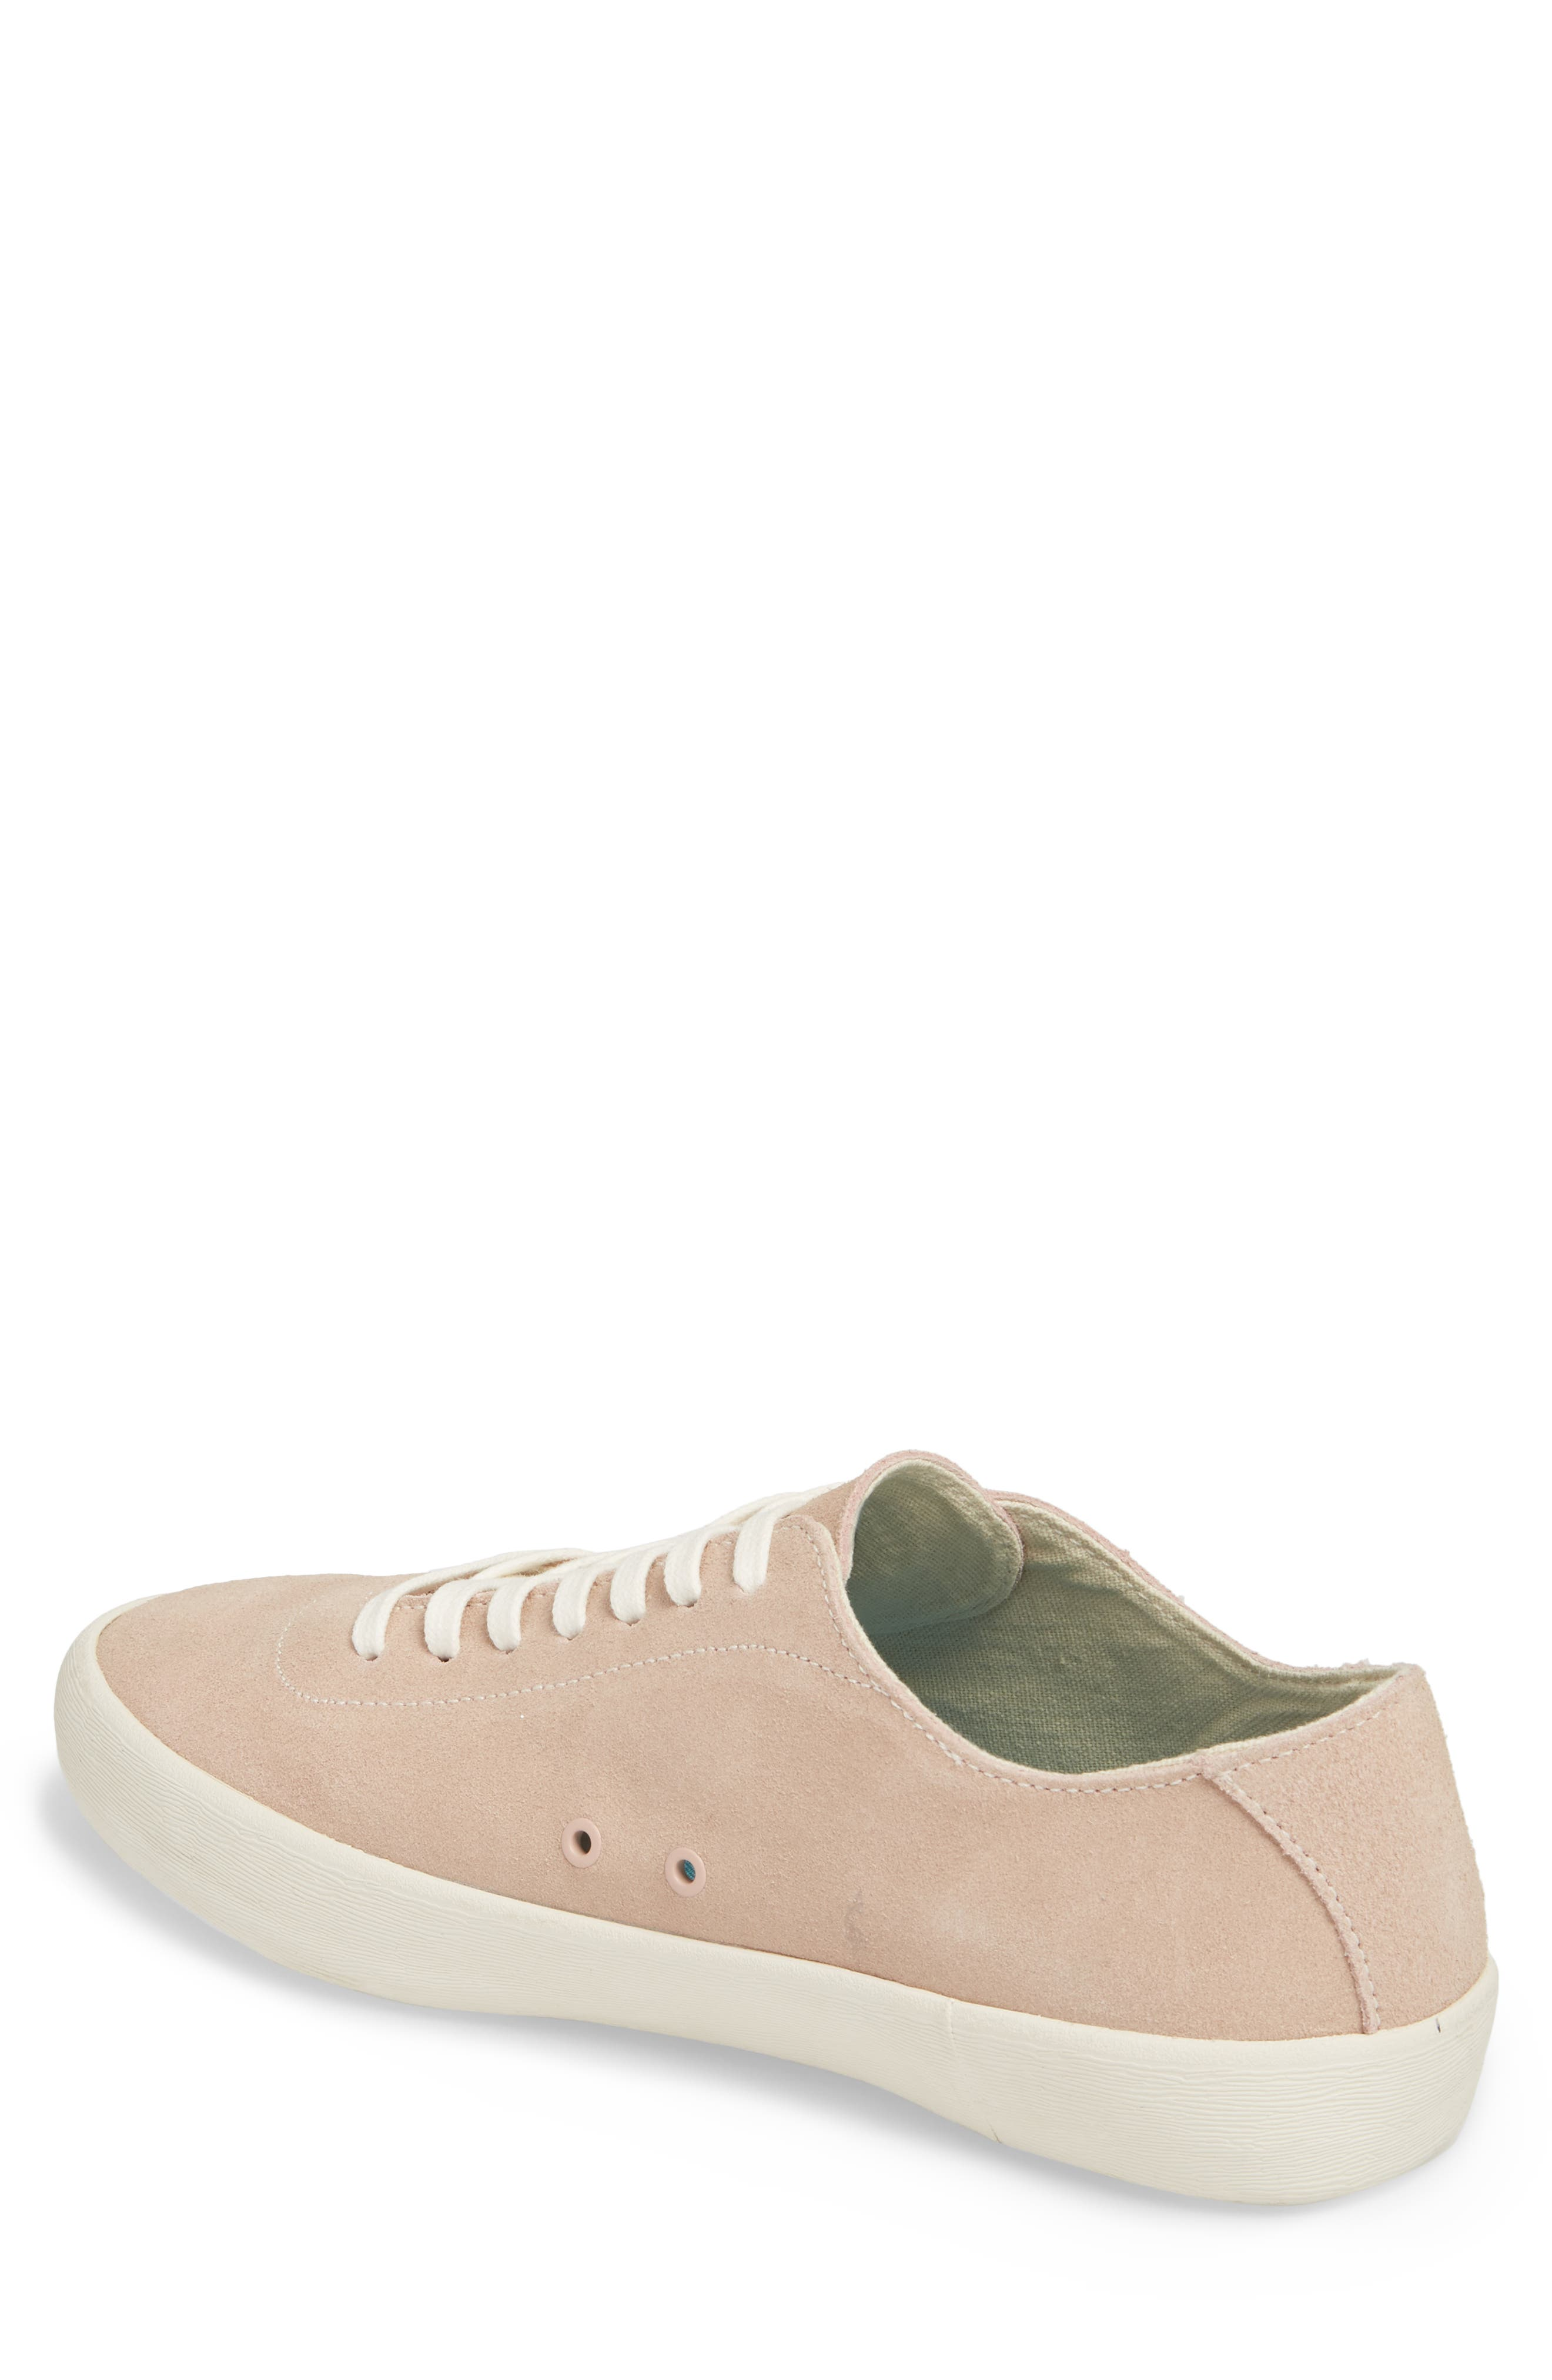 Racquet Club Sneaker,                             Alternate thumbnail 2, color,                             Rose Pink